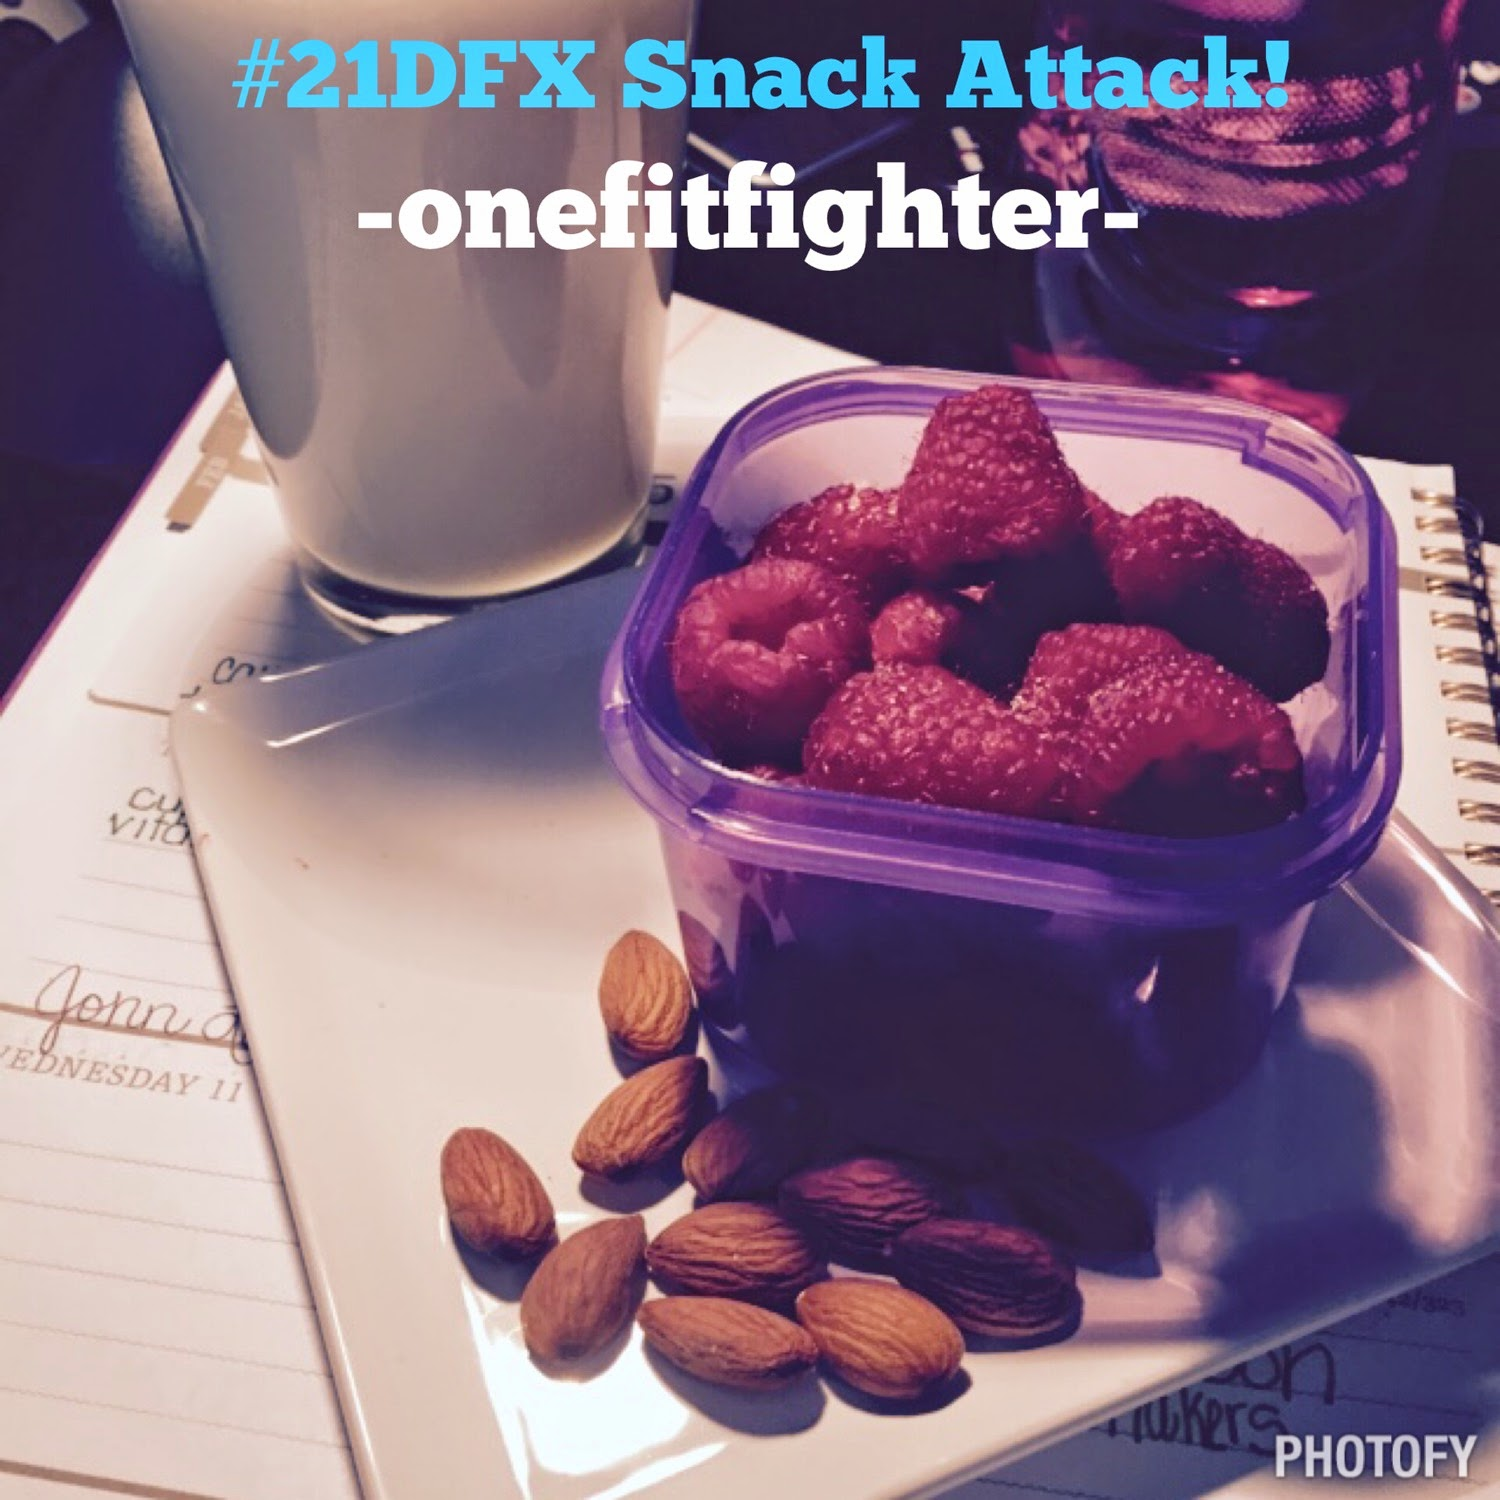 21 day fix snack ideas, 21 day fix extreme snack ideas